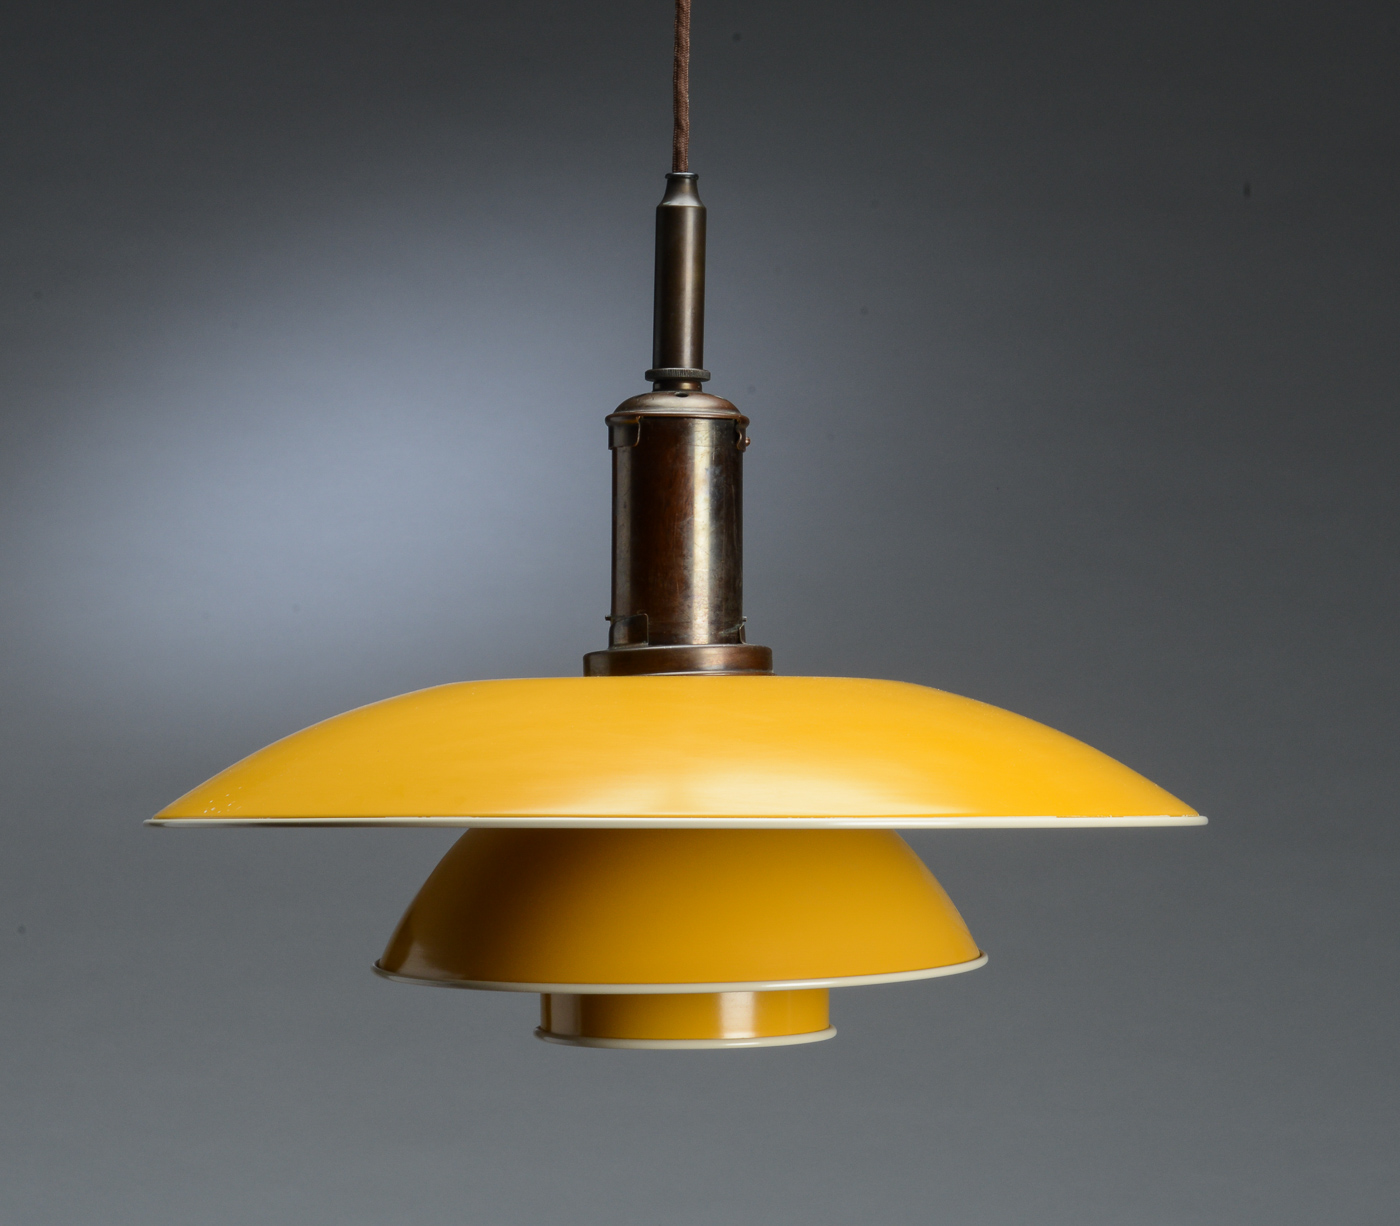 Poul Henningsen Lampe Poul Henningsen Ph 4½ 4 Pendant Lamp With Shade Yellow Painted Metal Mounted On Wire Shade Holder Marked Ph4200 Patented